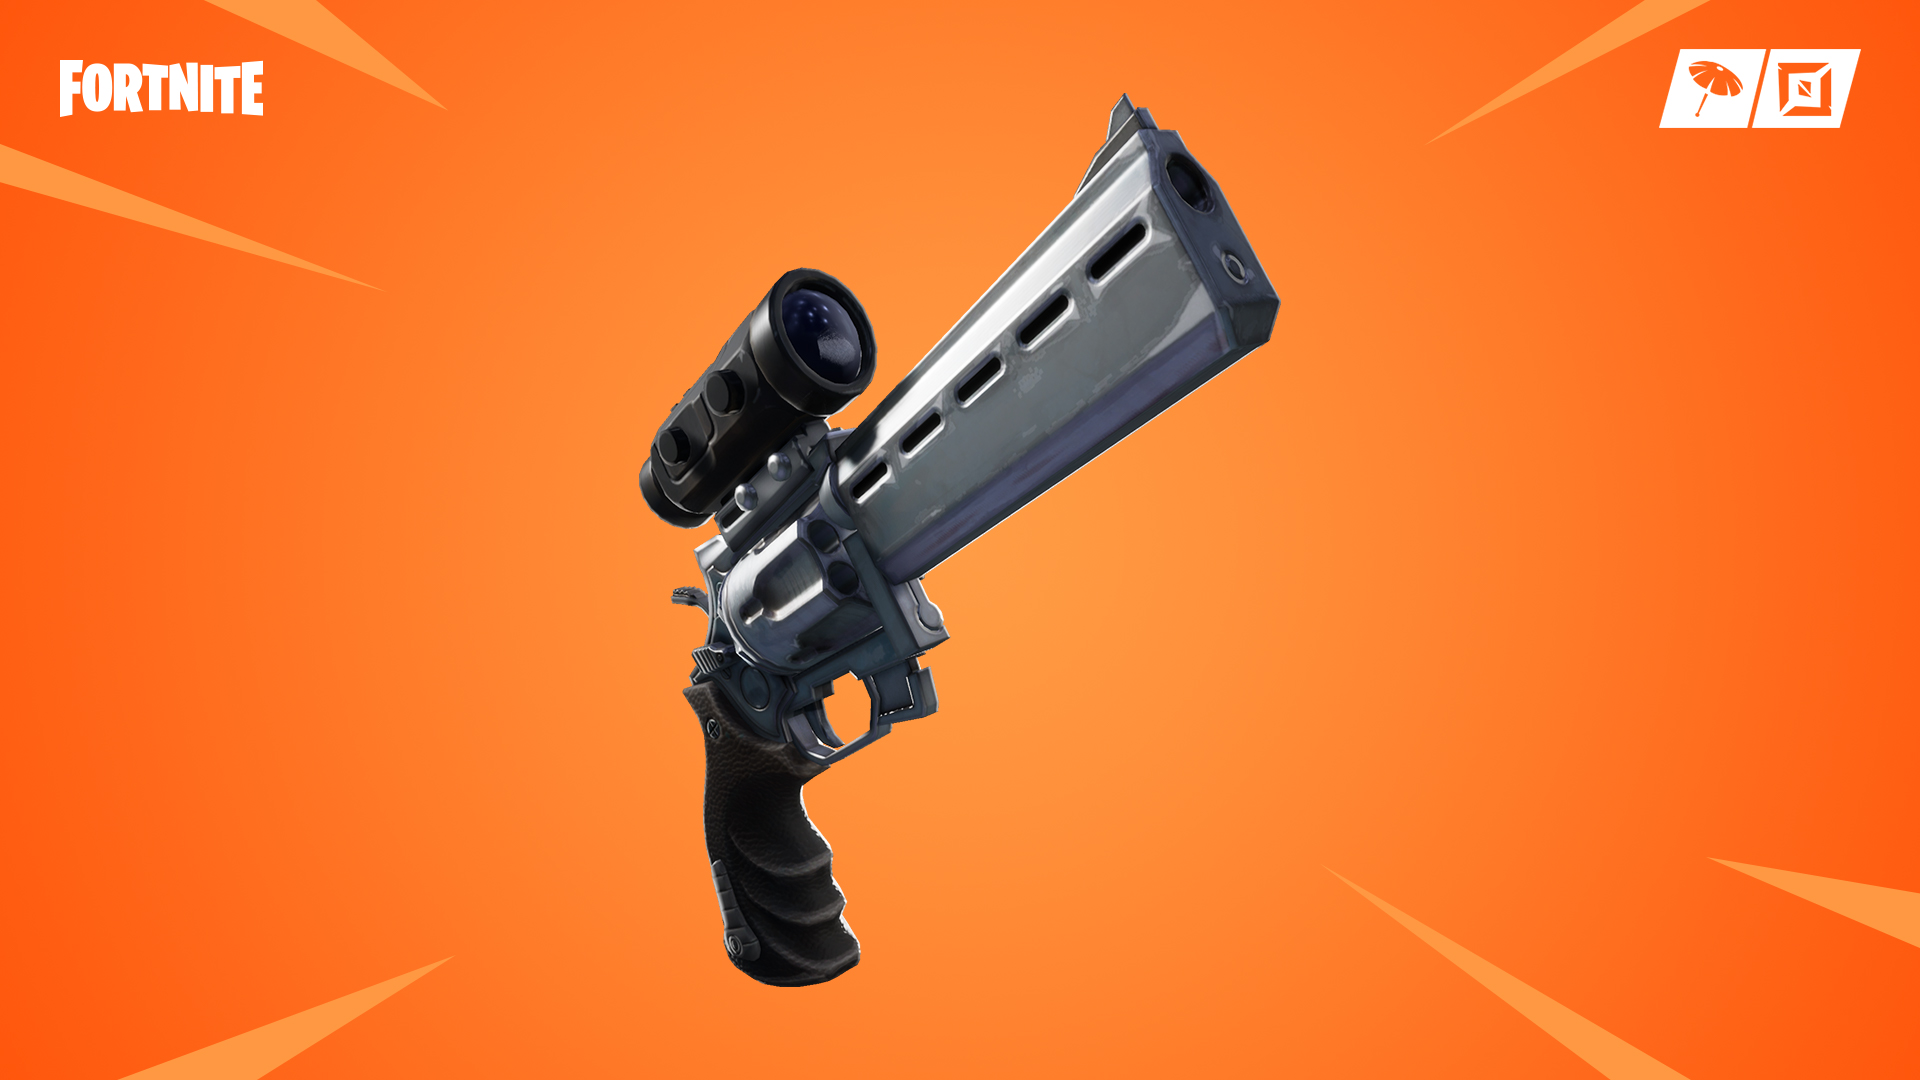 Photo of Fortnite patch 7.20 adds a new weapon, LTM, improves Creative and more